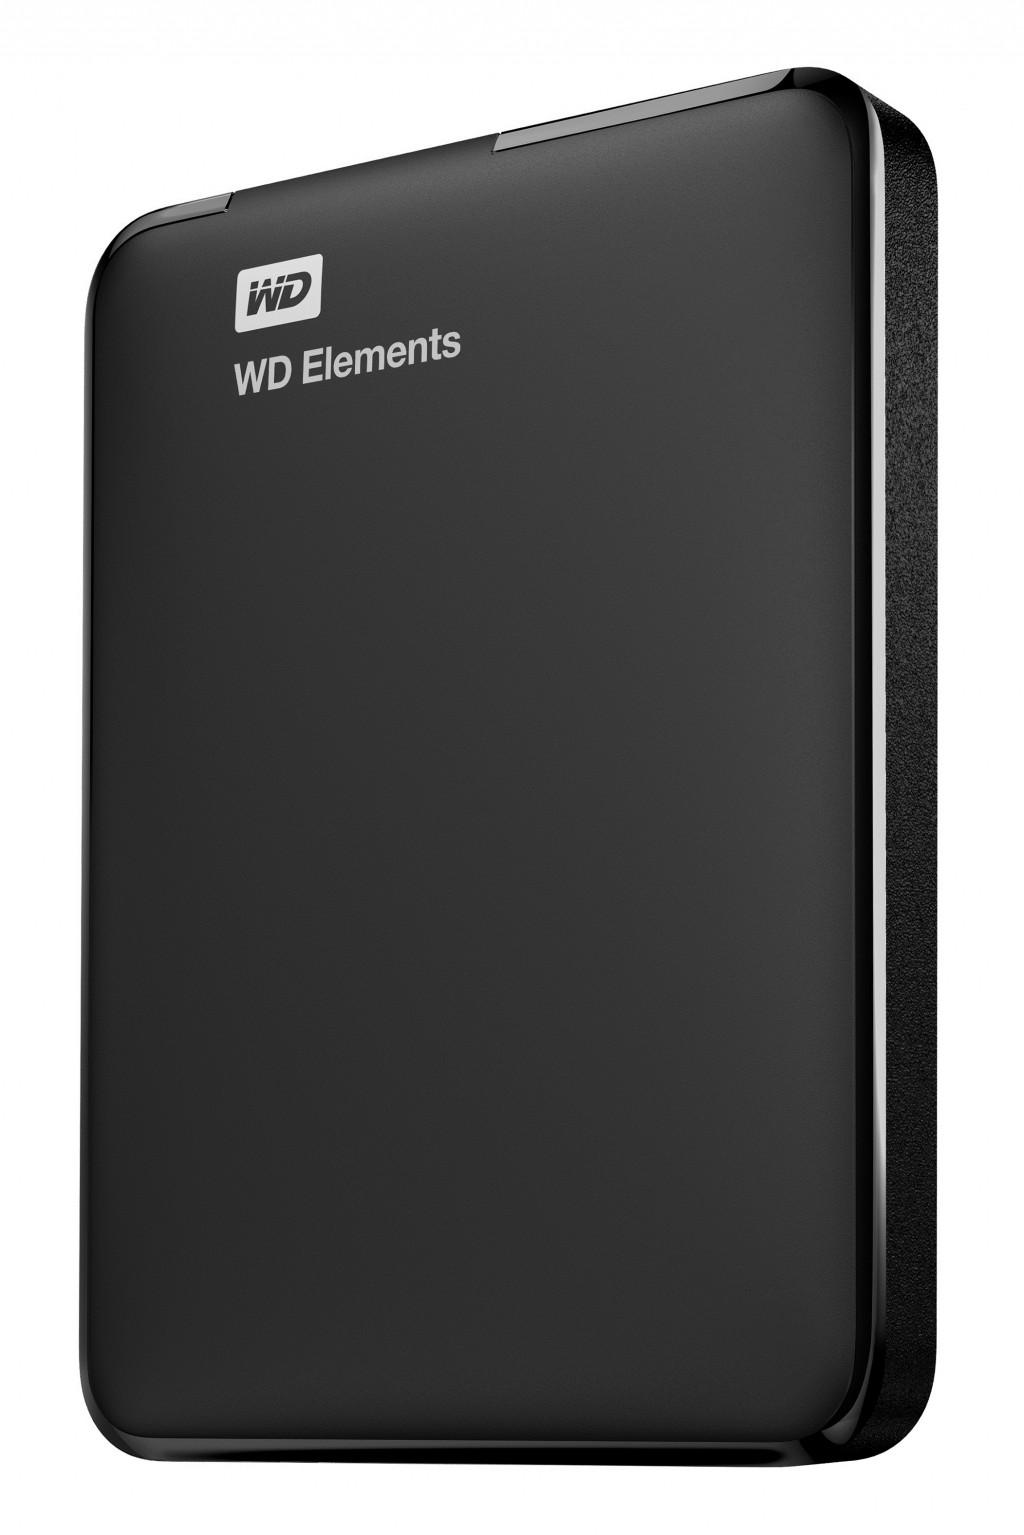 WD Elements ext portable 4TB